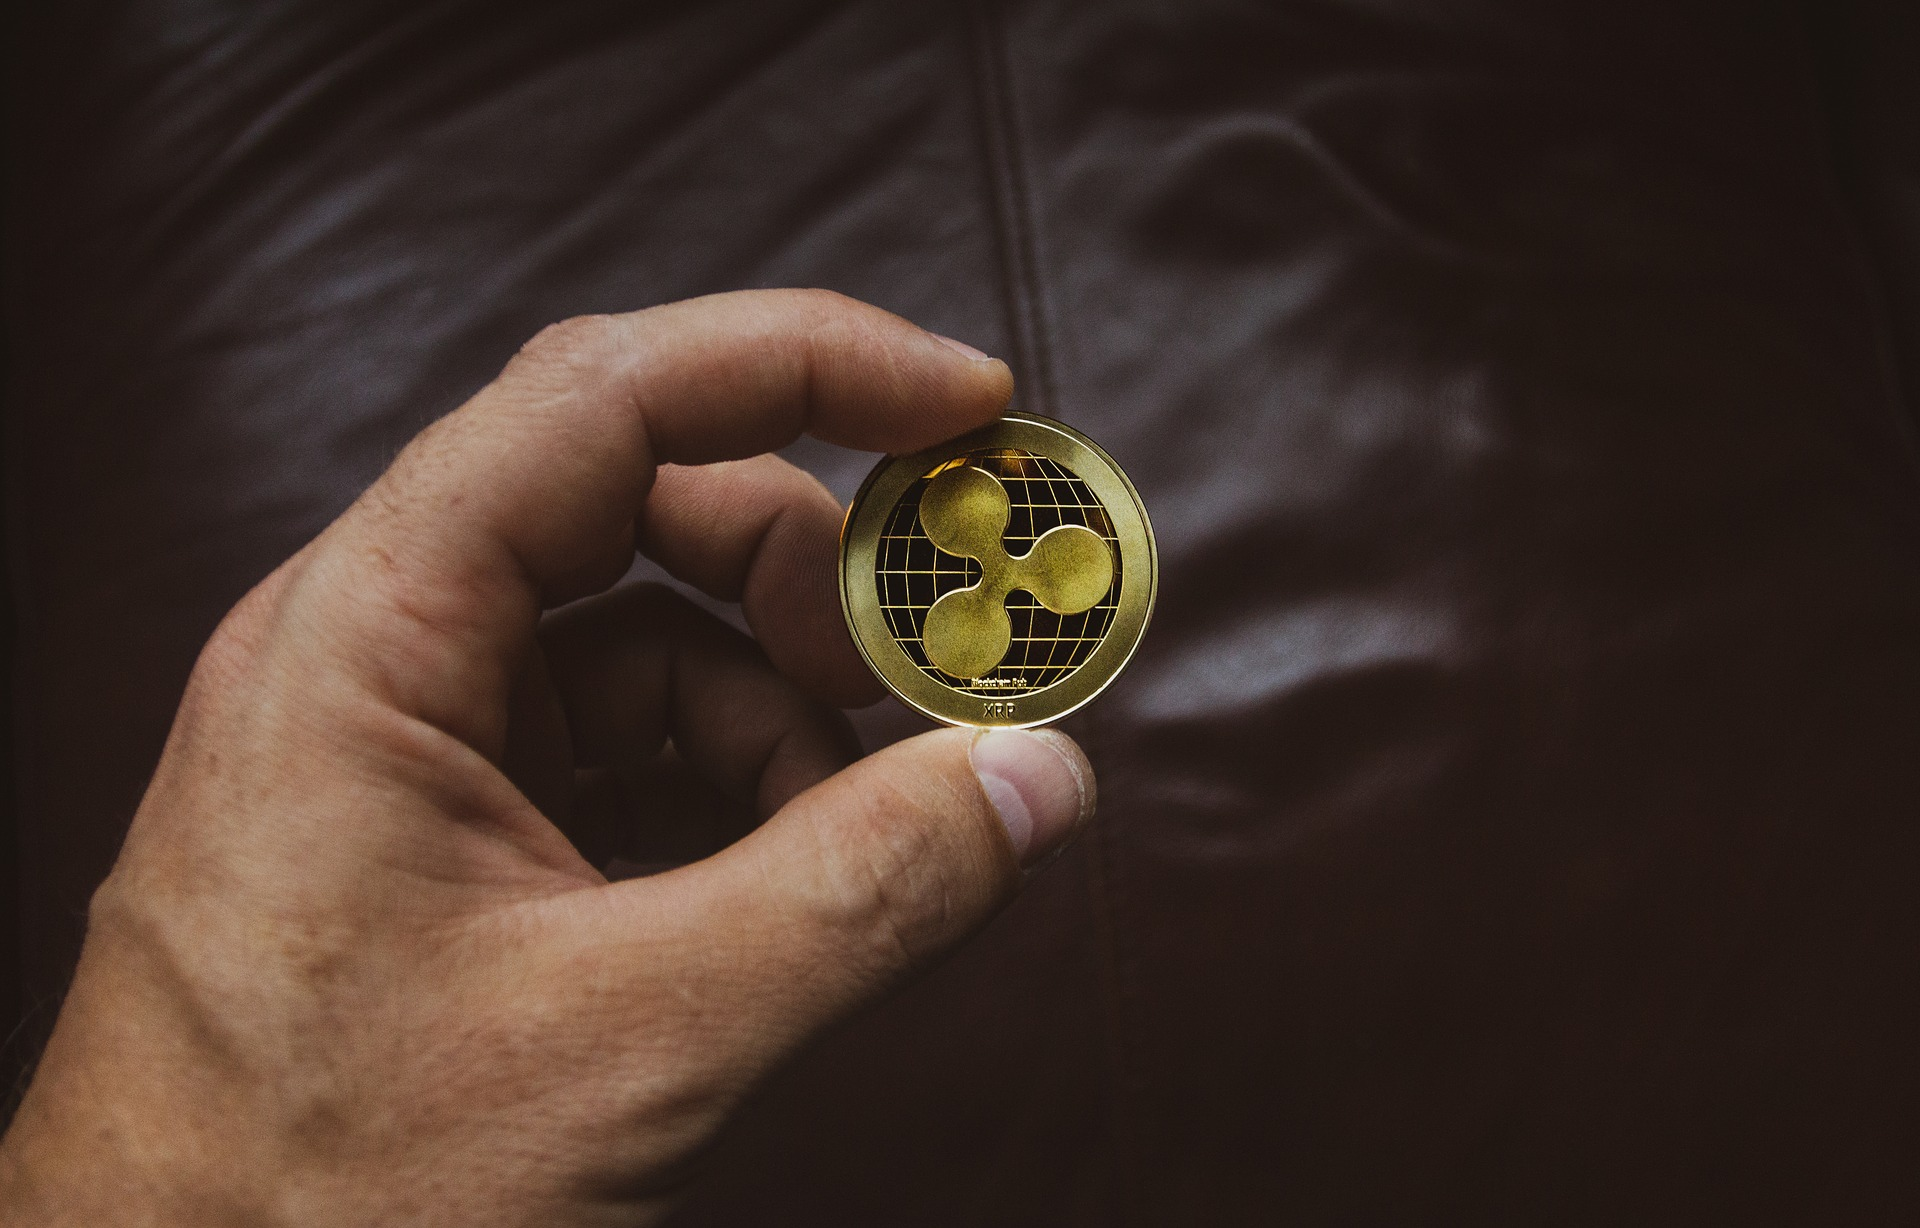 Ripple Labs has Sent a Fresh Supply of XRP Payments to the Former CTO Jed McCaleb